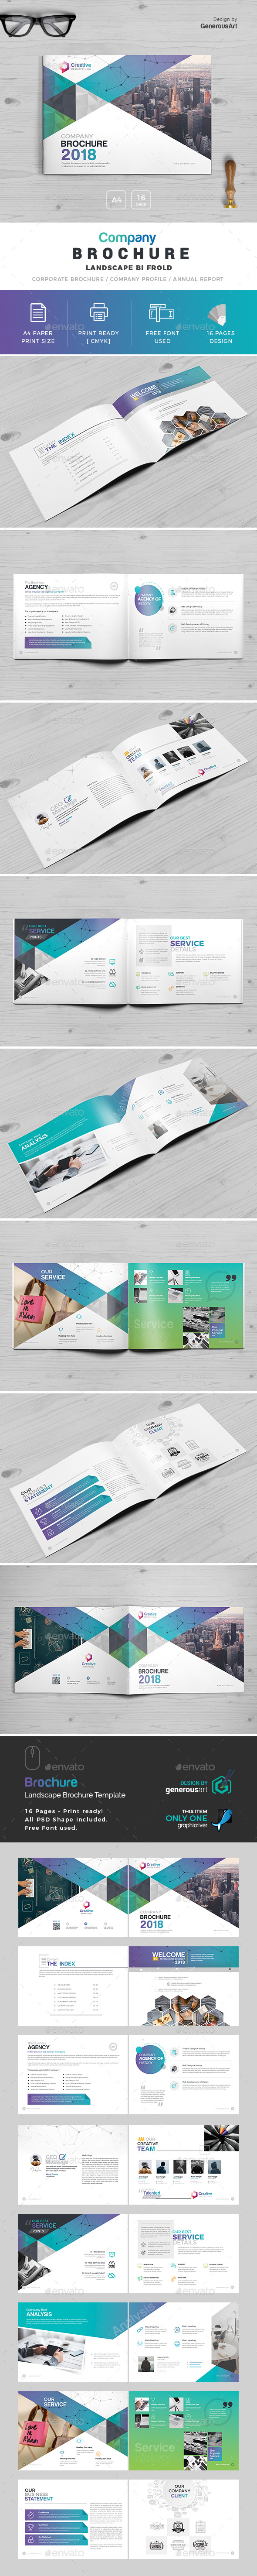 Company Landscape Brochure - Corporate Brochures